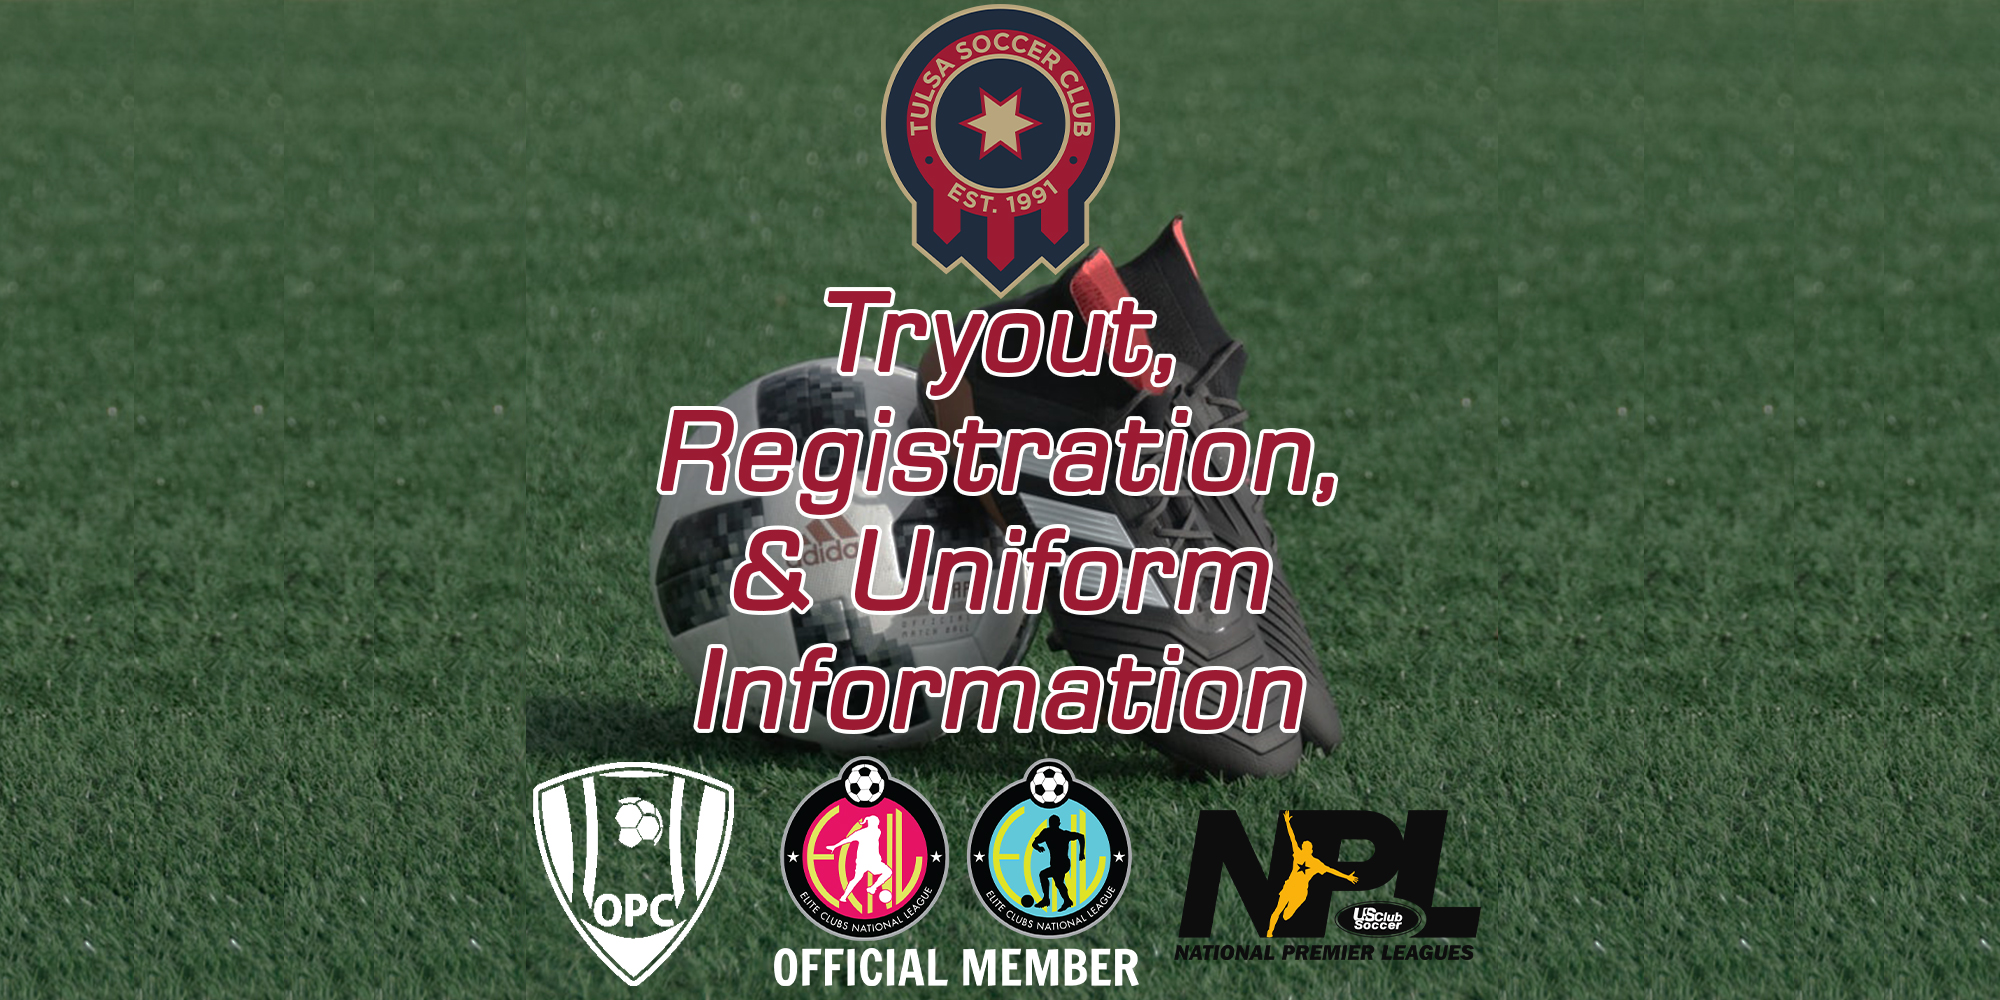 2020 Tulsa SC Tryout Information